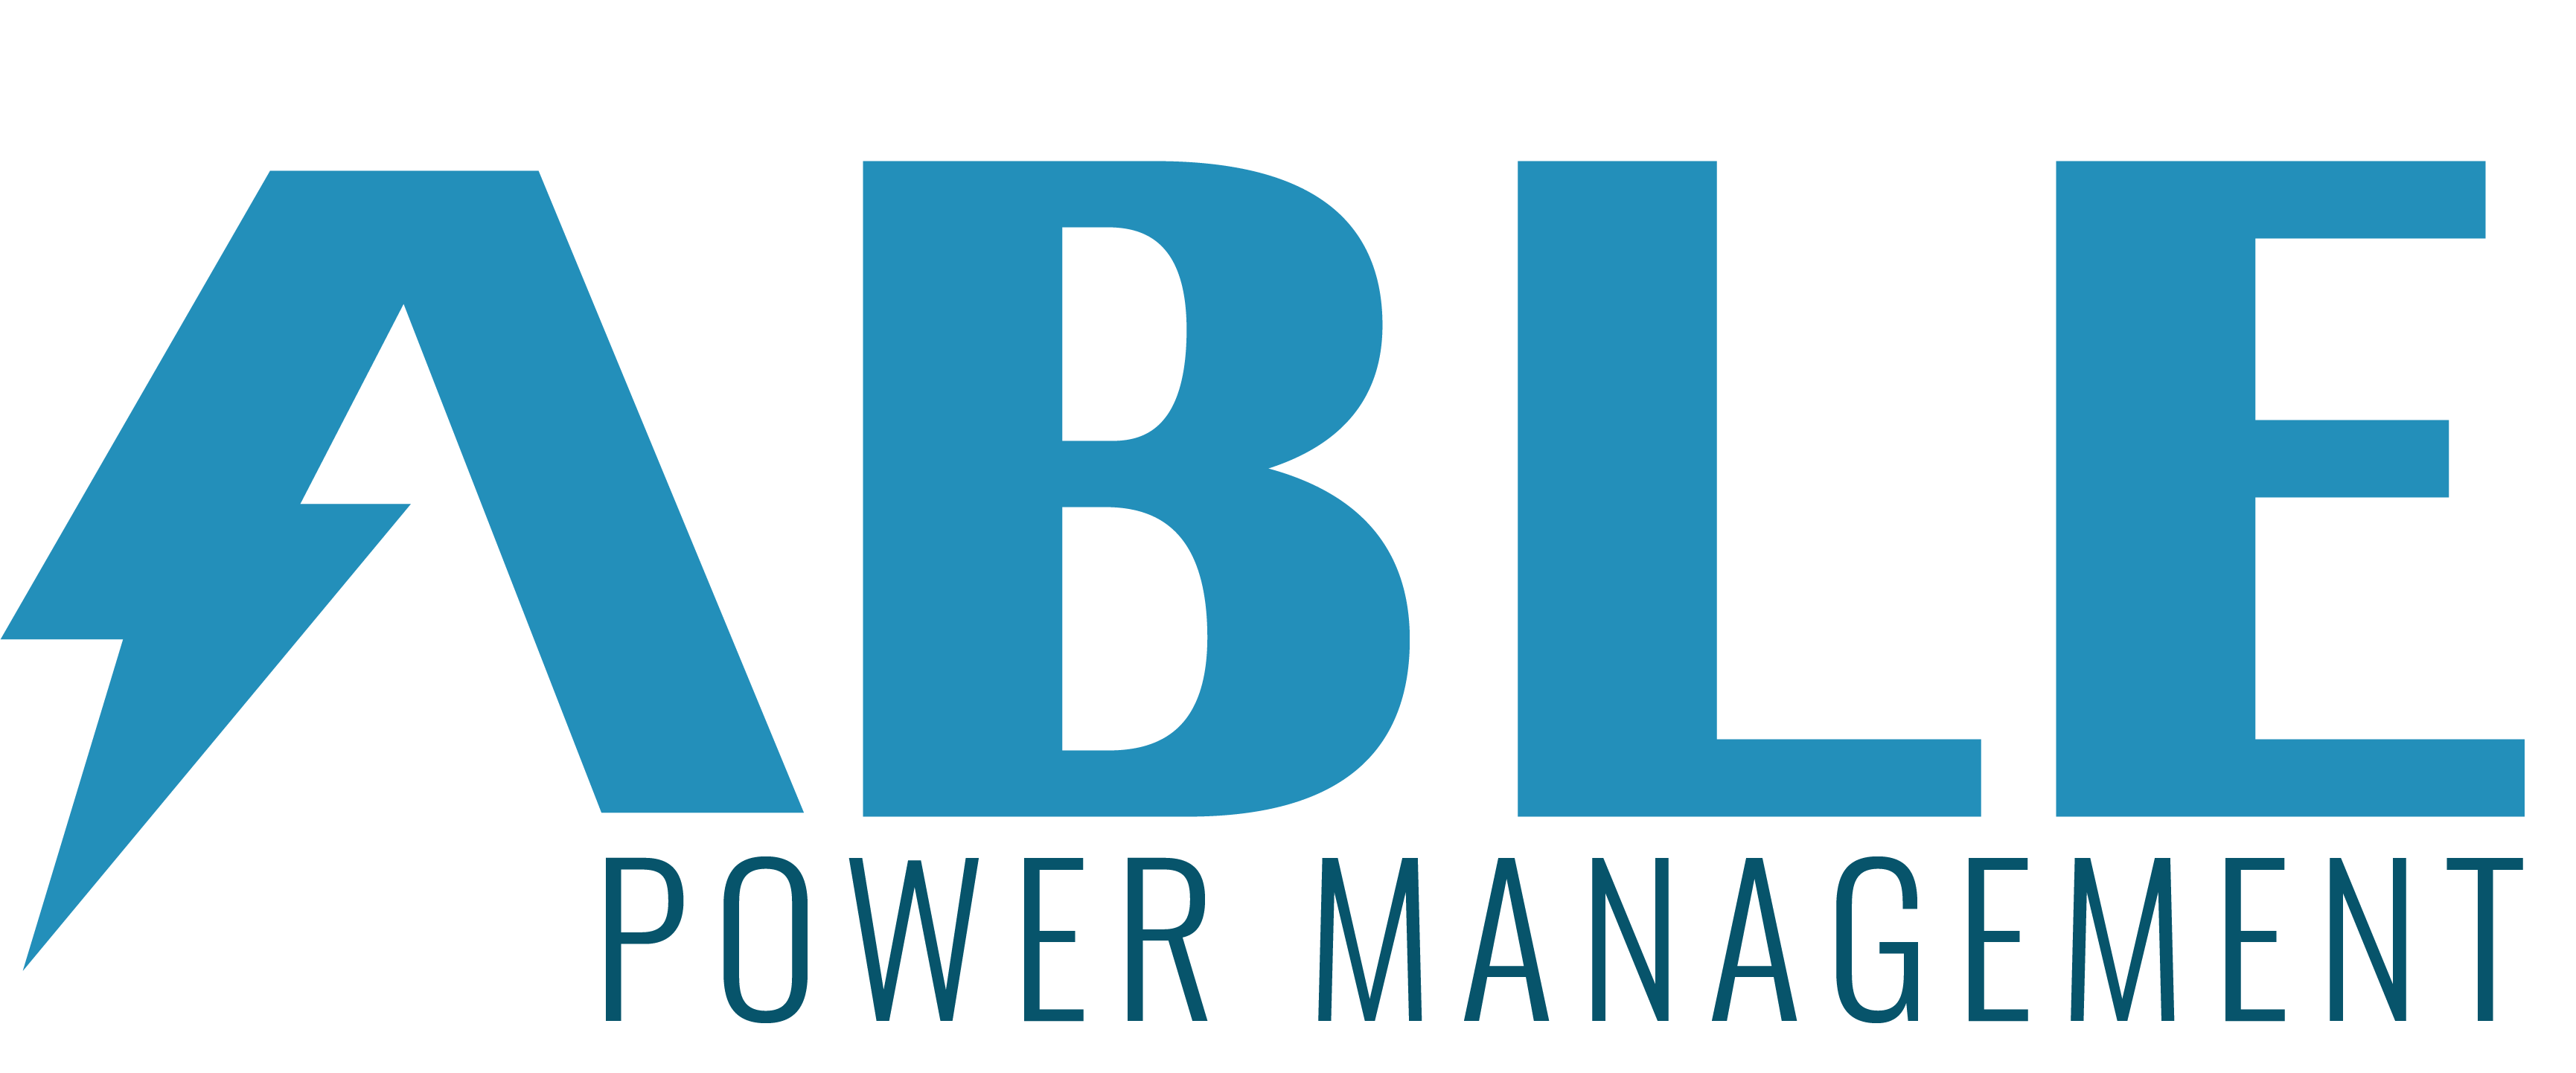 Able Power Management